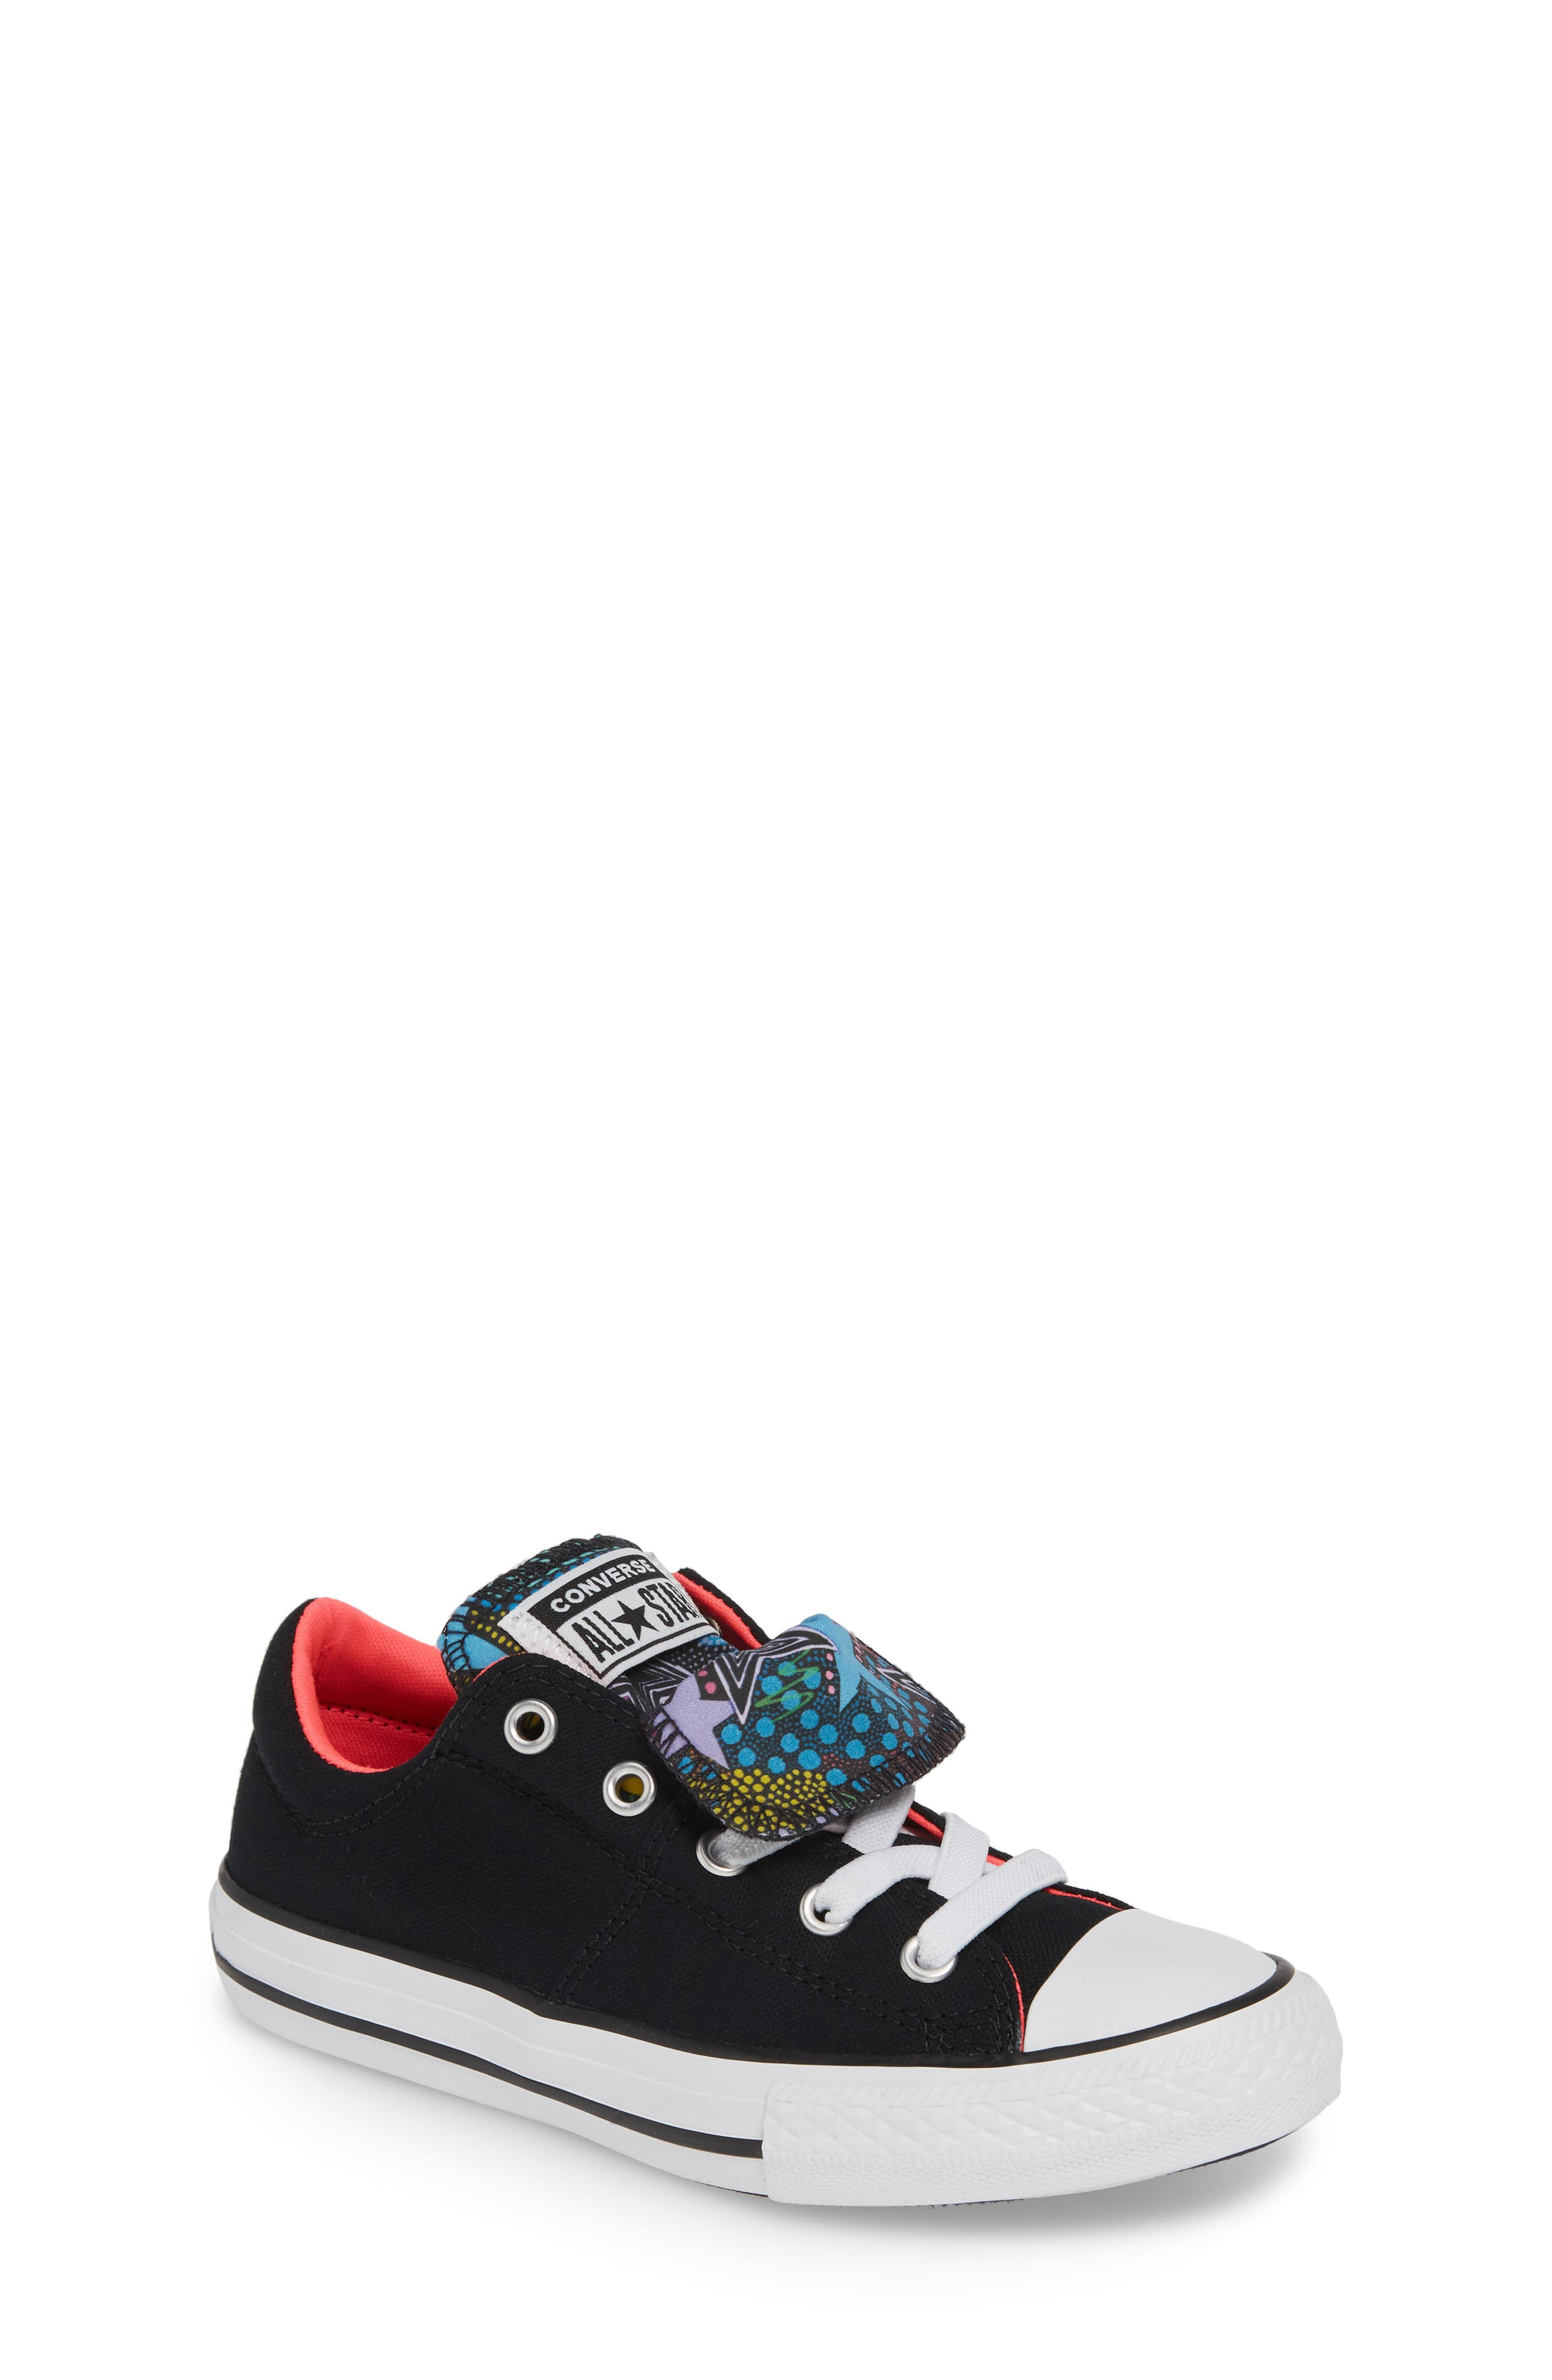 CONVERSE Chuck Taylor<sup>®</sup> All Star<sup>®</sup> Maddie Double Tongue Sneaker, Main, color, 001